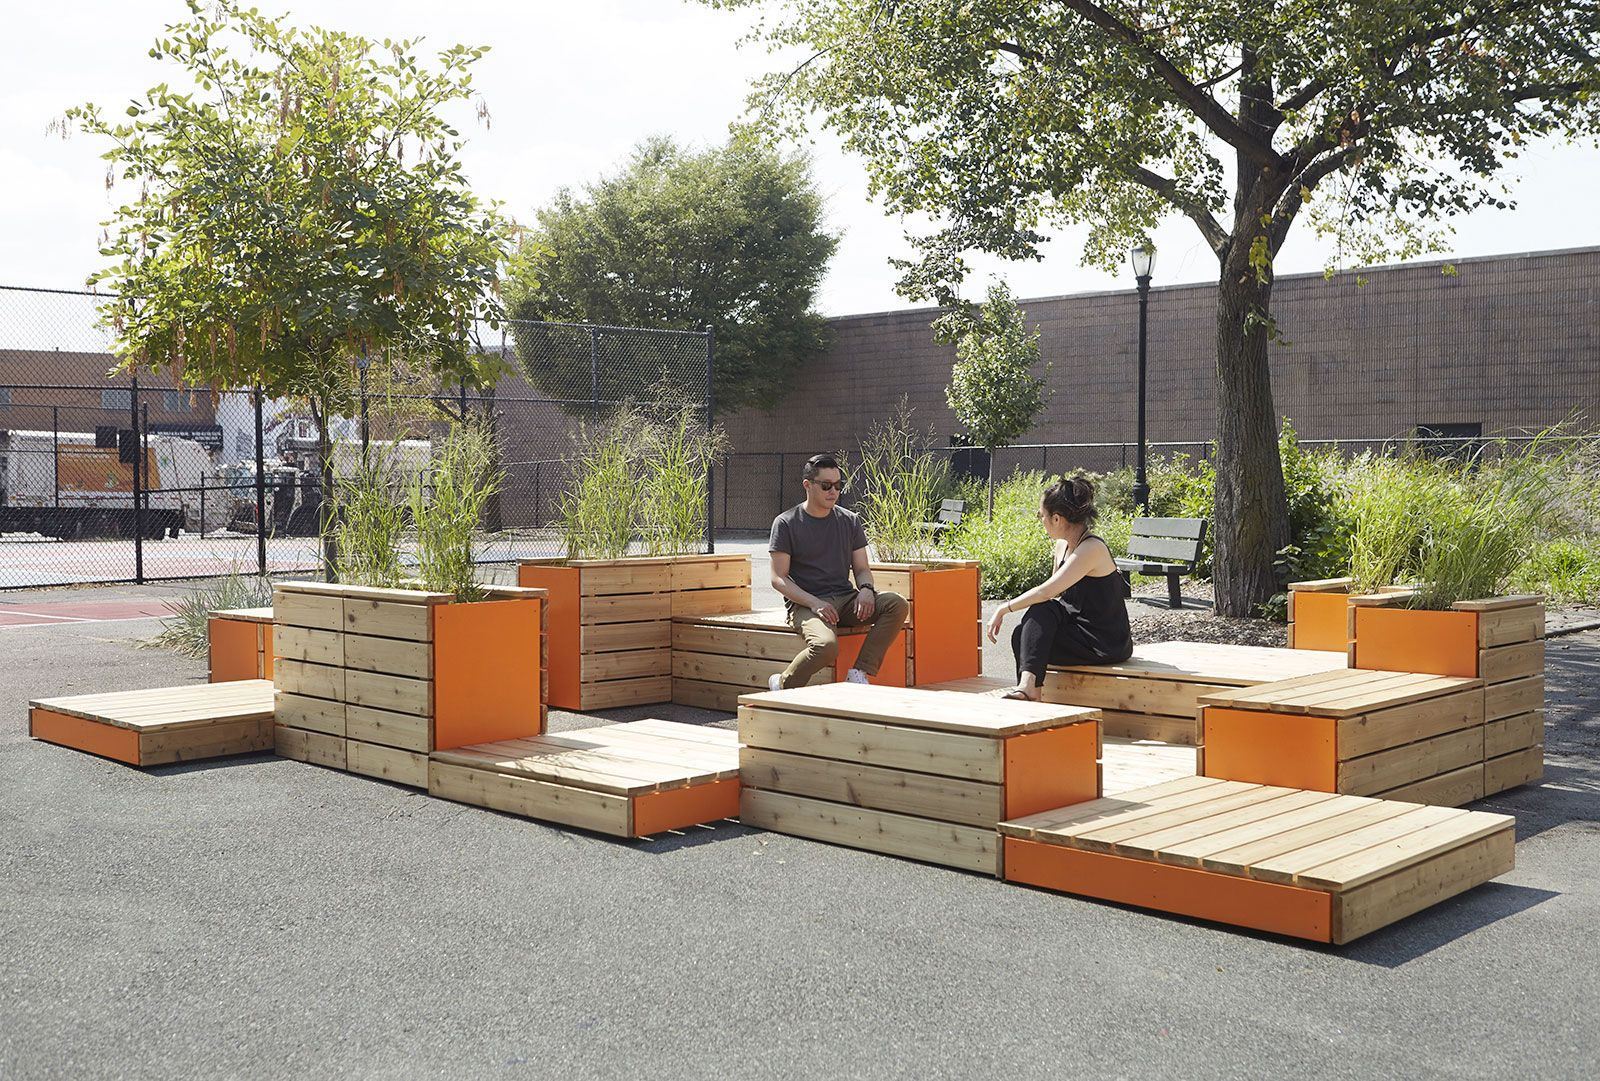 Michael Clyde Johnson, Untitled Benches, Patios, Planters ...